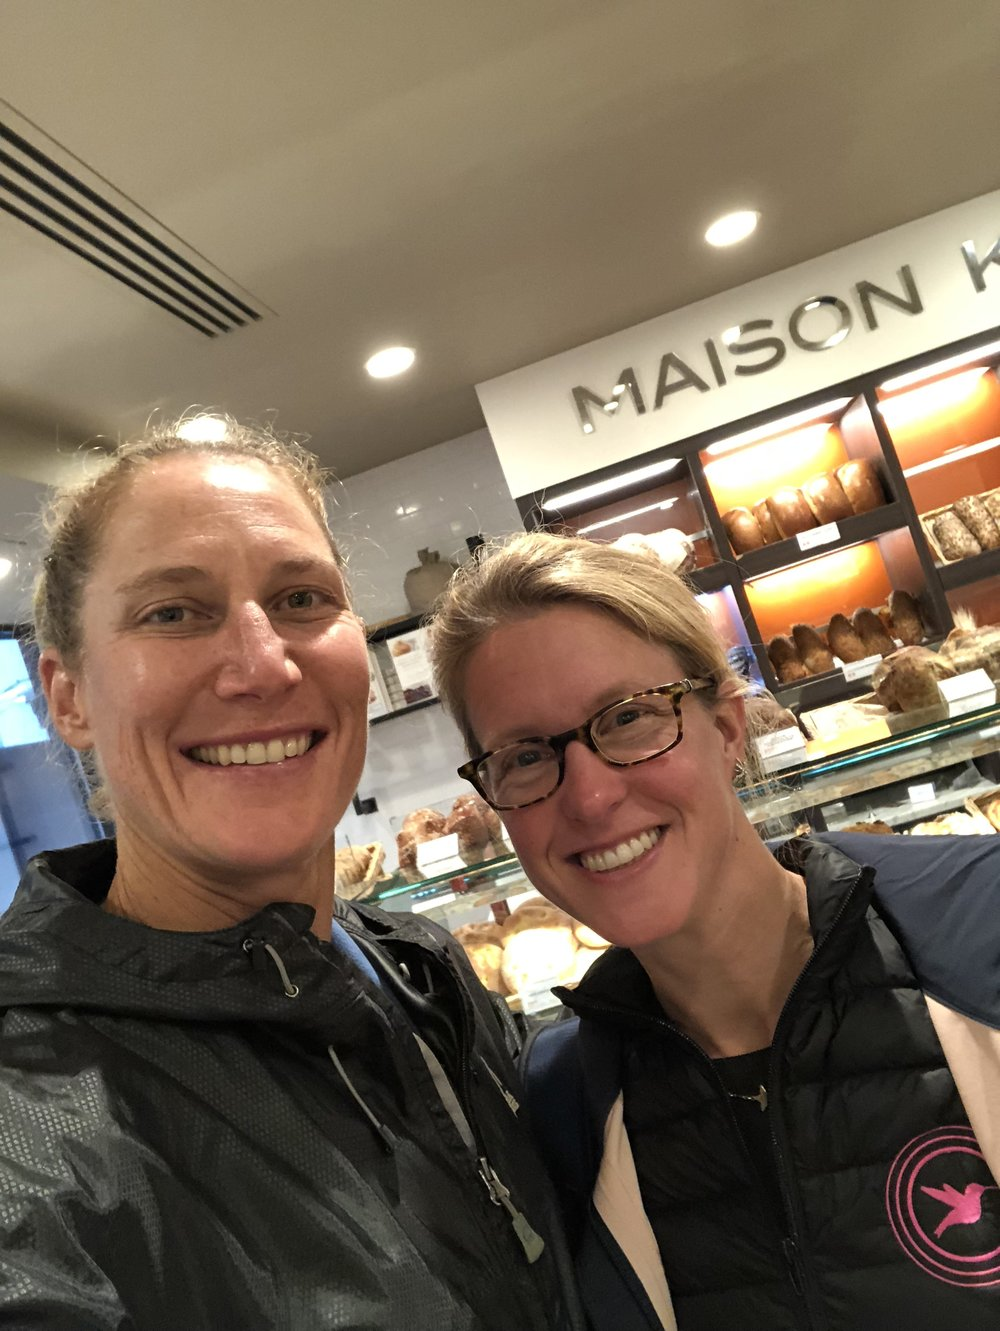 Monday morning breakfast date with my friend and teammate, Libby.